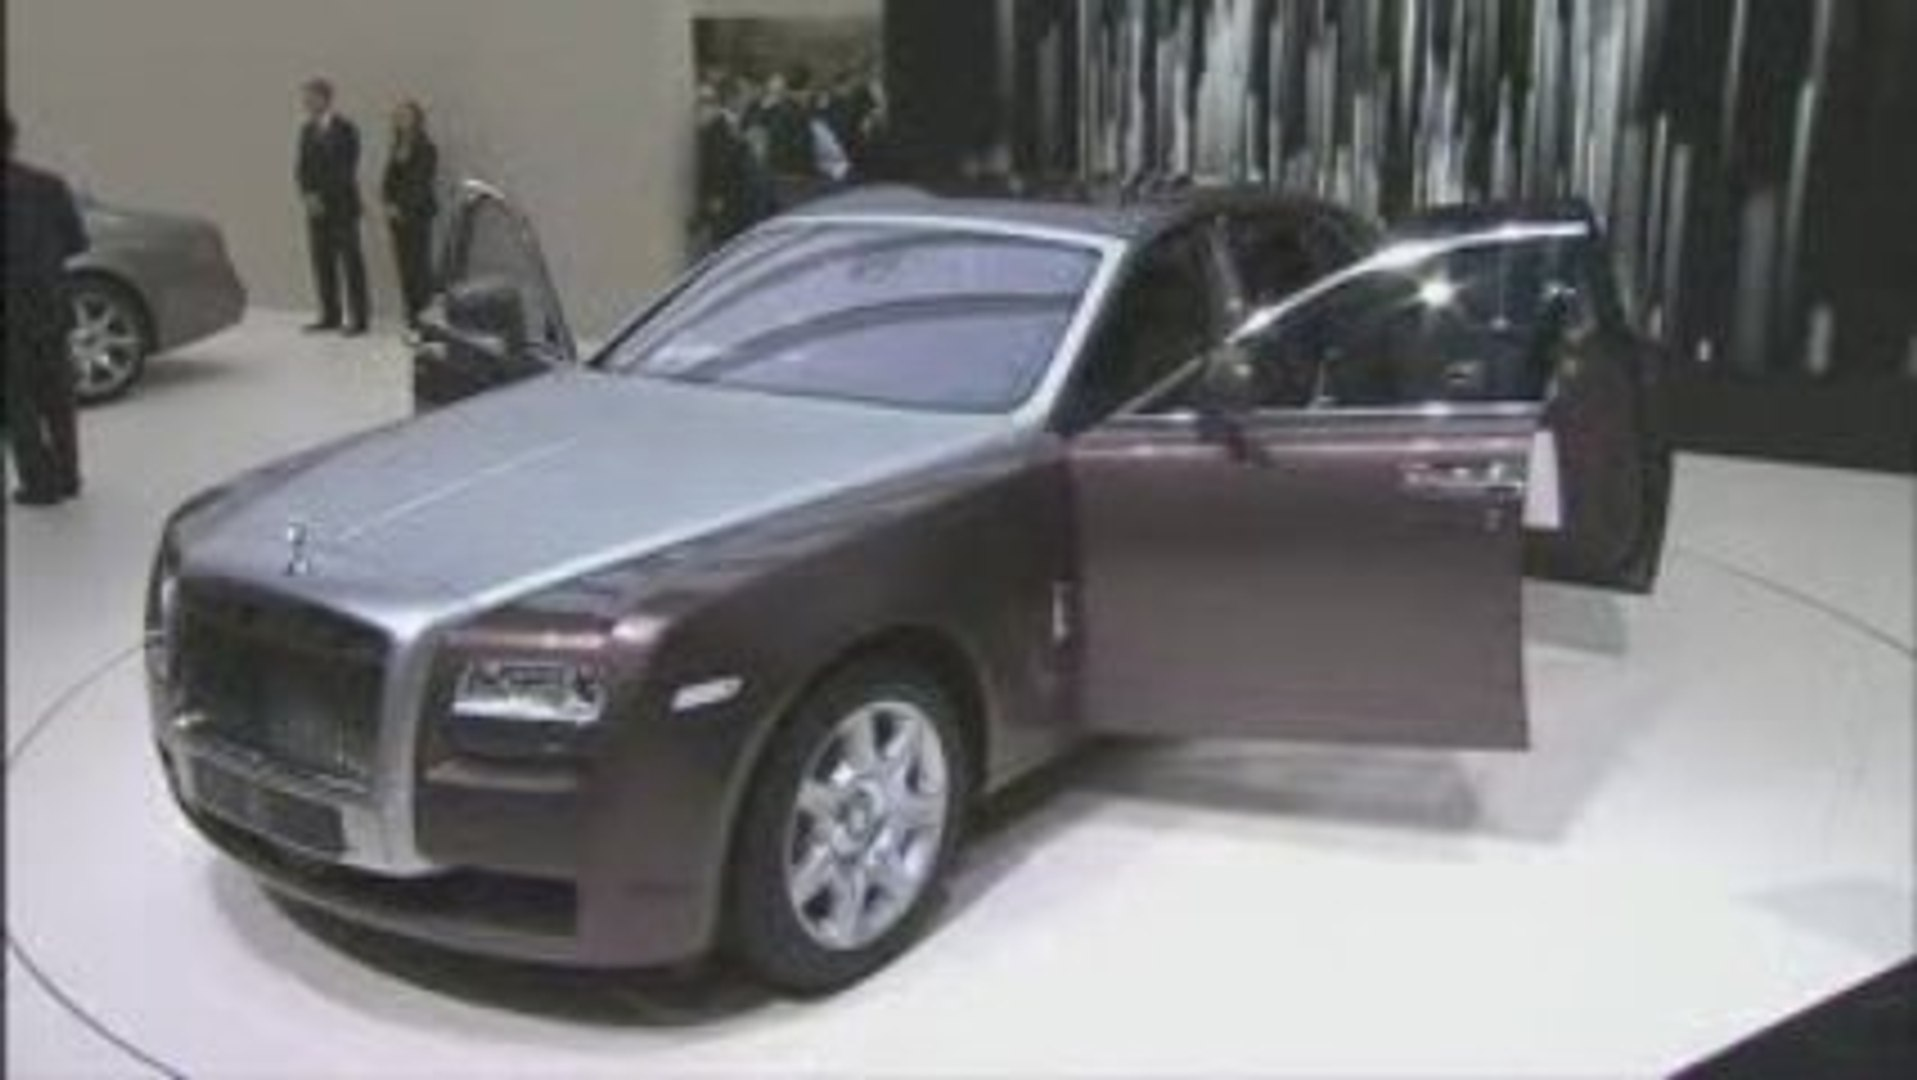 Exterior views of the Rolls Royce Ghost